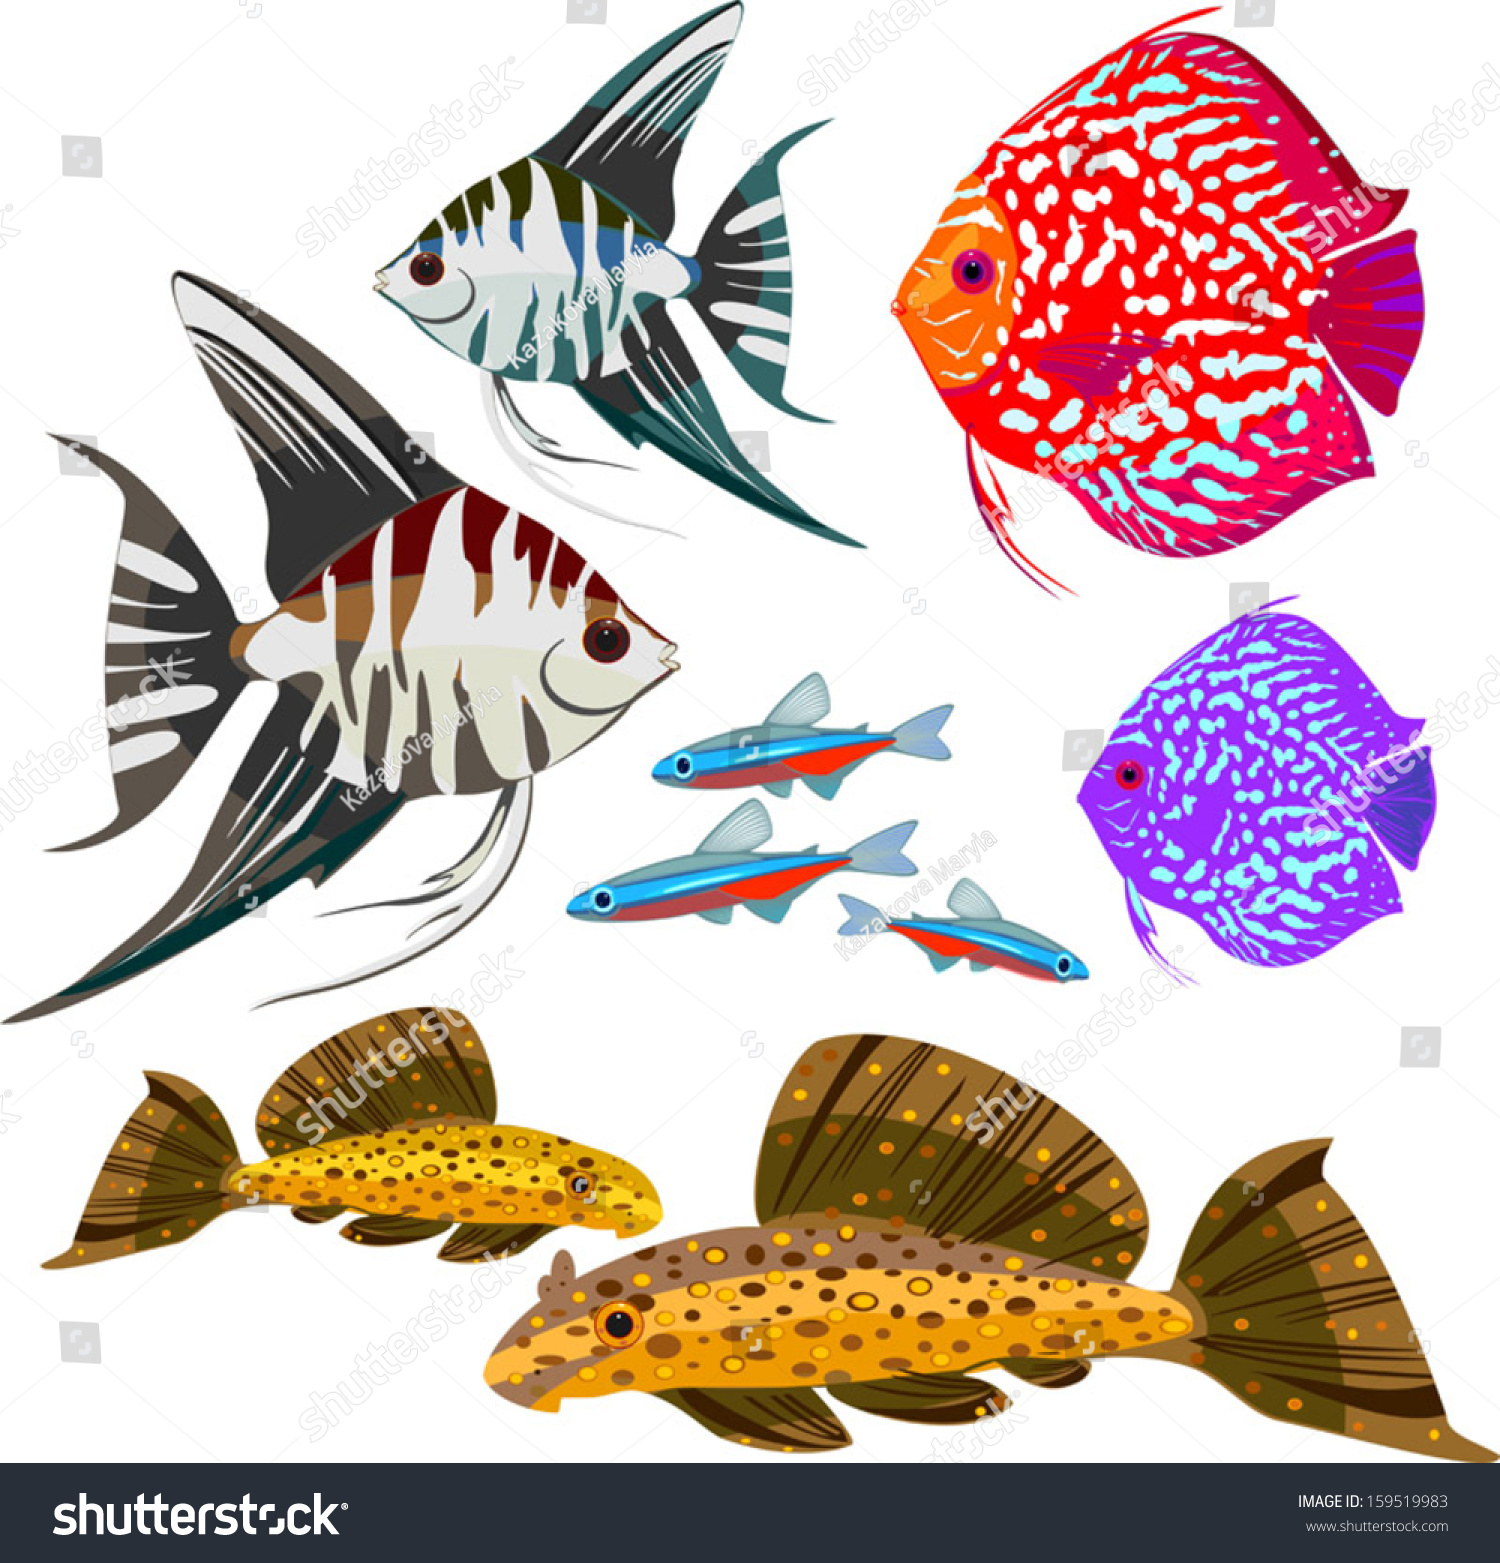 Freshwater fish clipart - Set Of Different Freshwater Aquarium Fishes